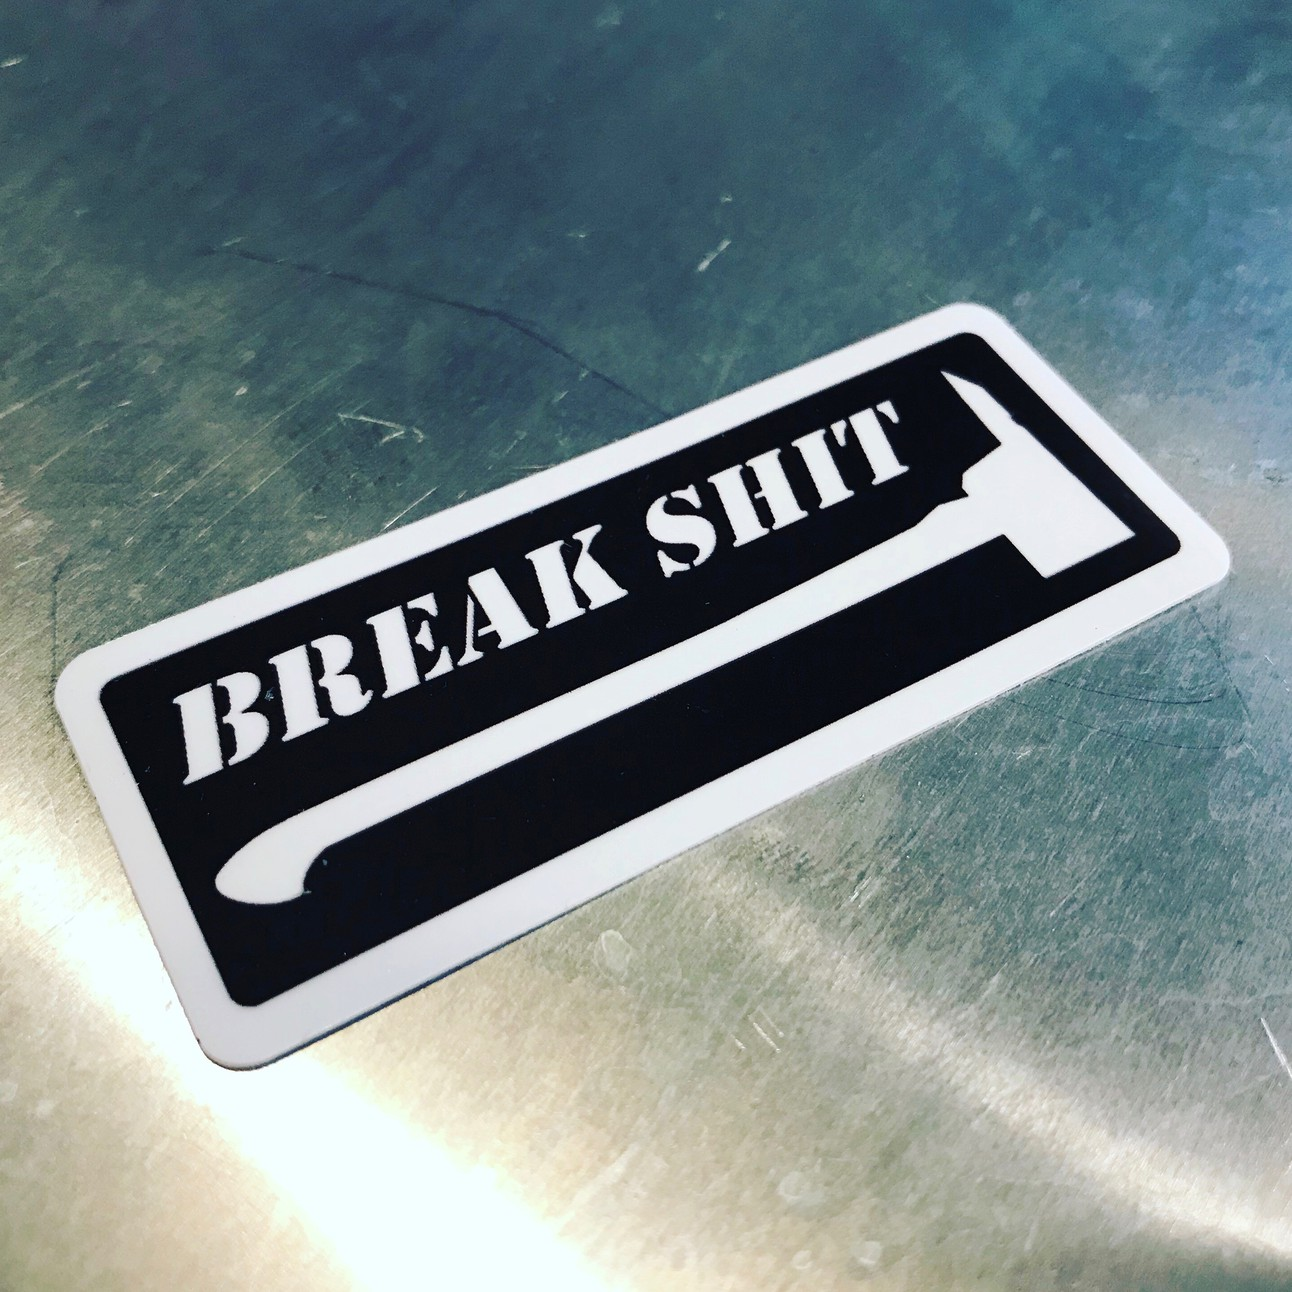 Break shit helmet tool sticker